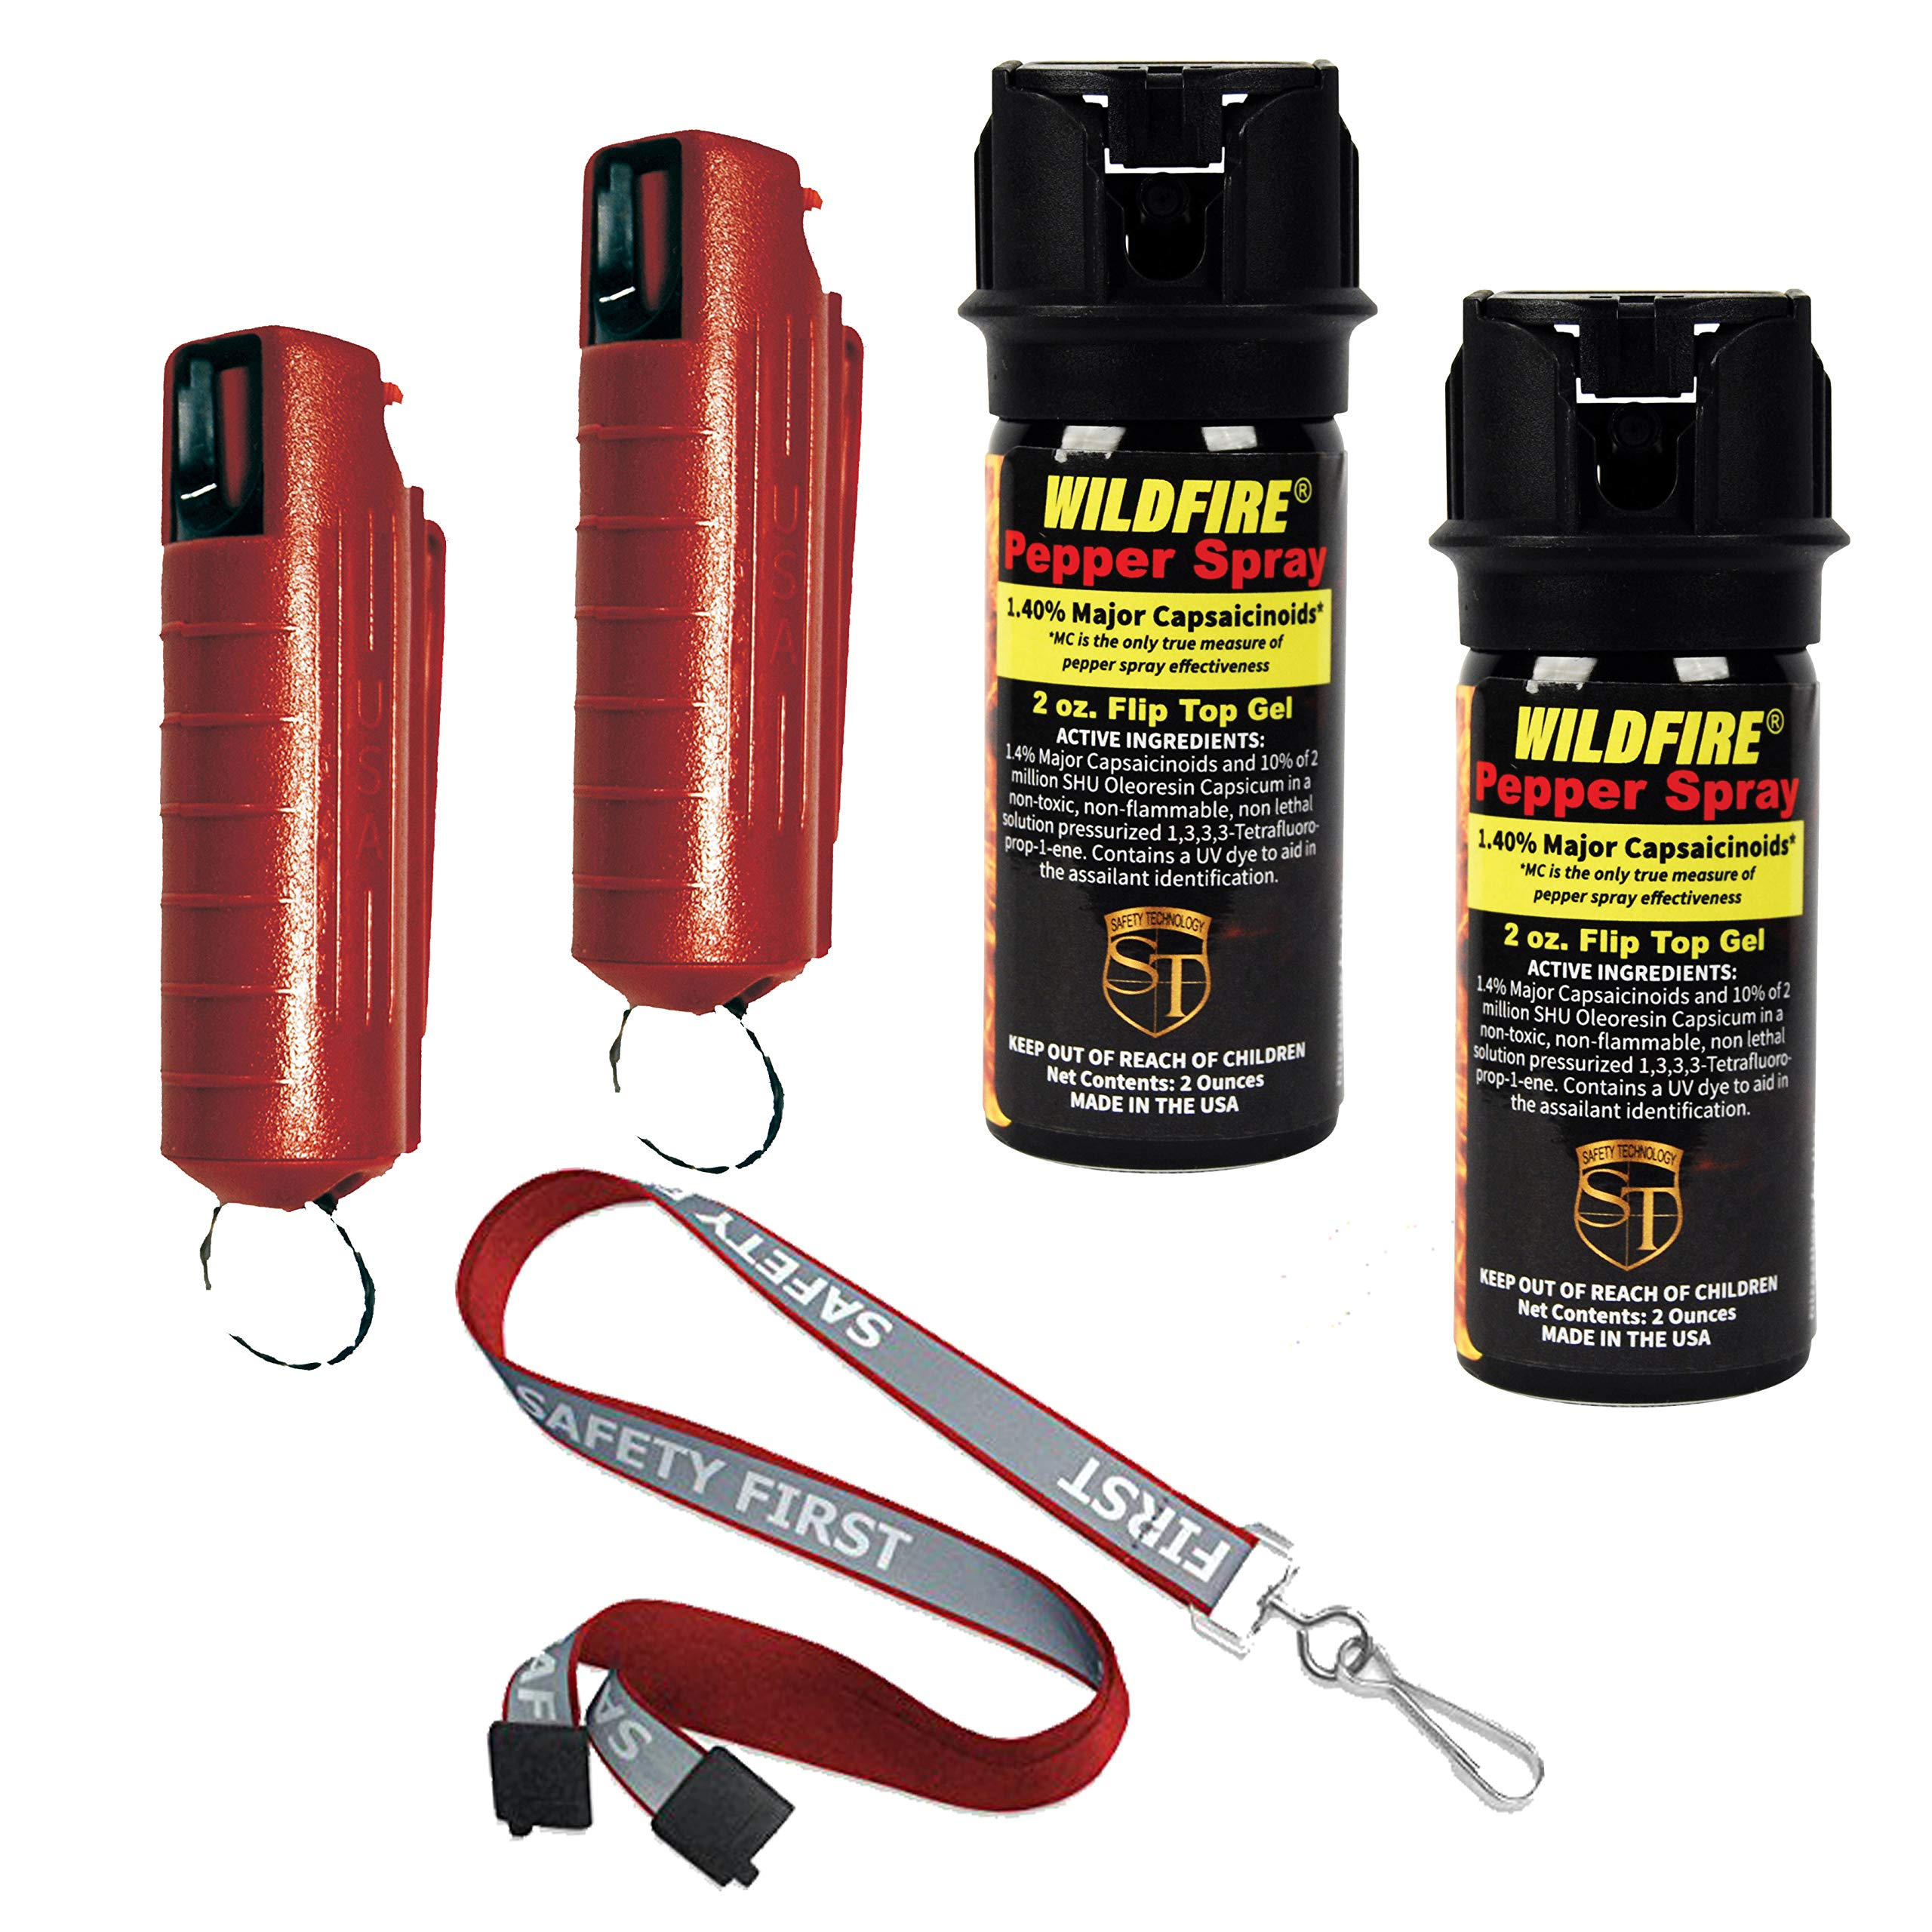 College Campus Bundle: Wildfire 2 Oz 1.4% MC Pepper Gel, 1/2 Oz 1.4% MC Pepper Spray and a Safety First Breakaway Lanyard - Lot of 5 as Shown by Wildfire Motors